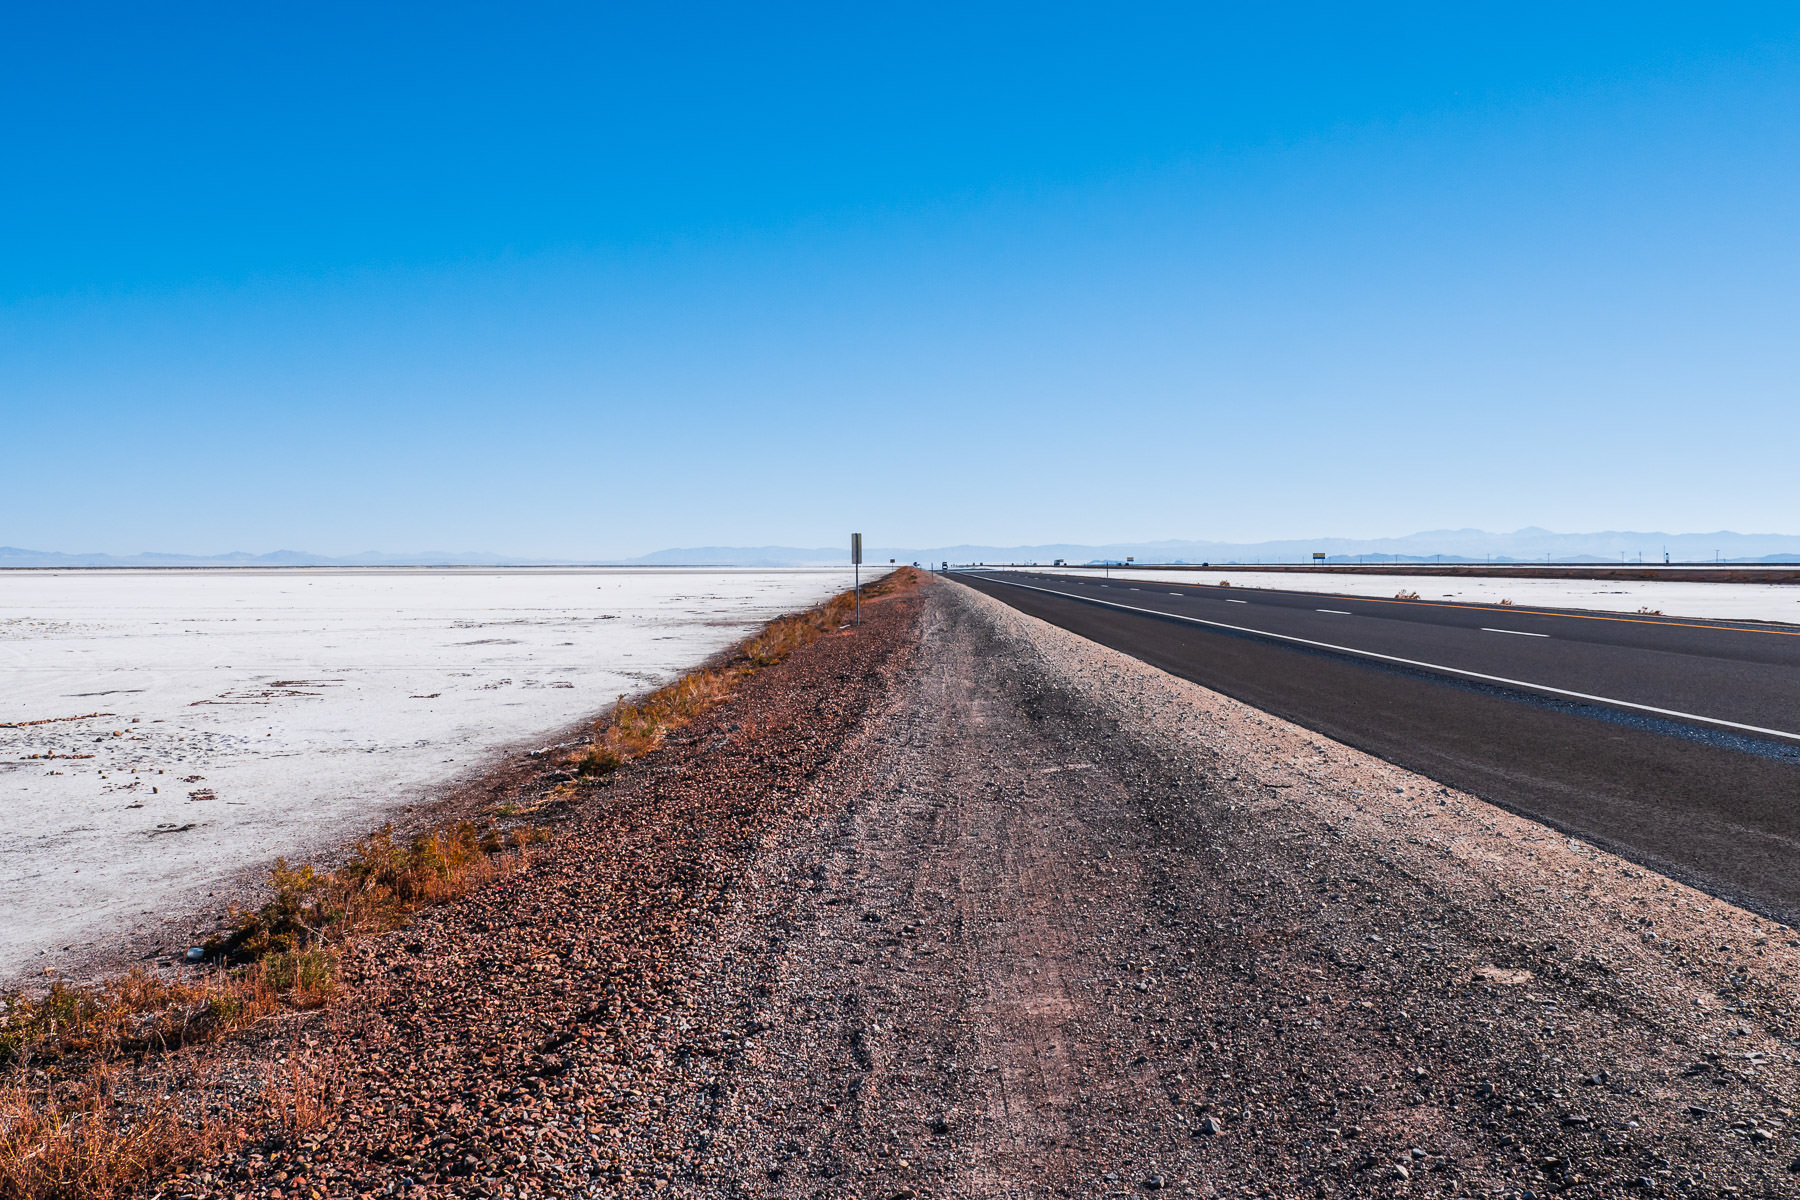 Interstate 80 reaches across the desert landscape of Utah's Bonneville Salt Flats.